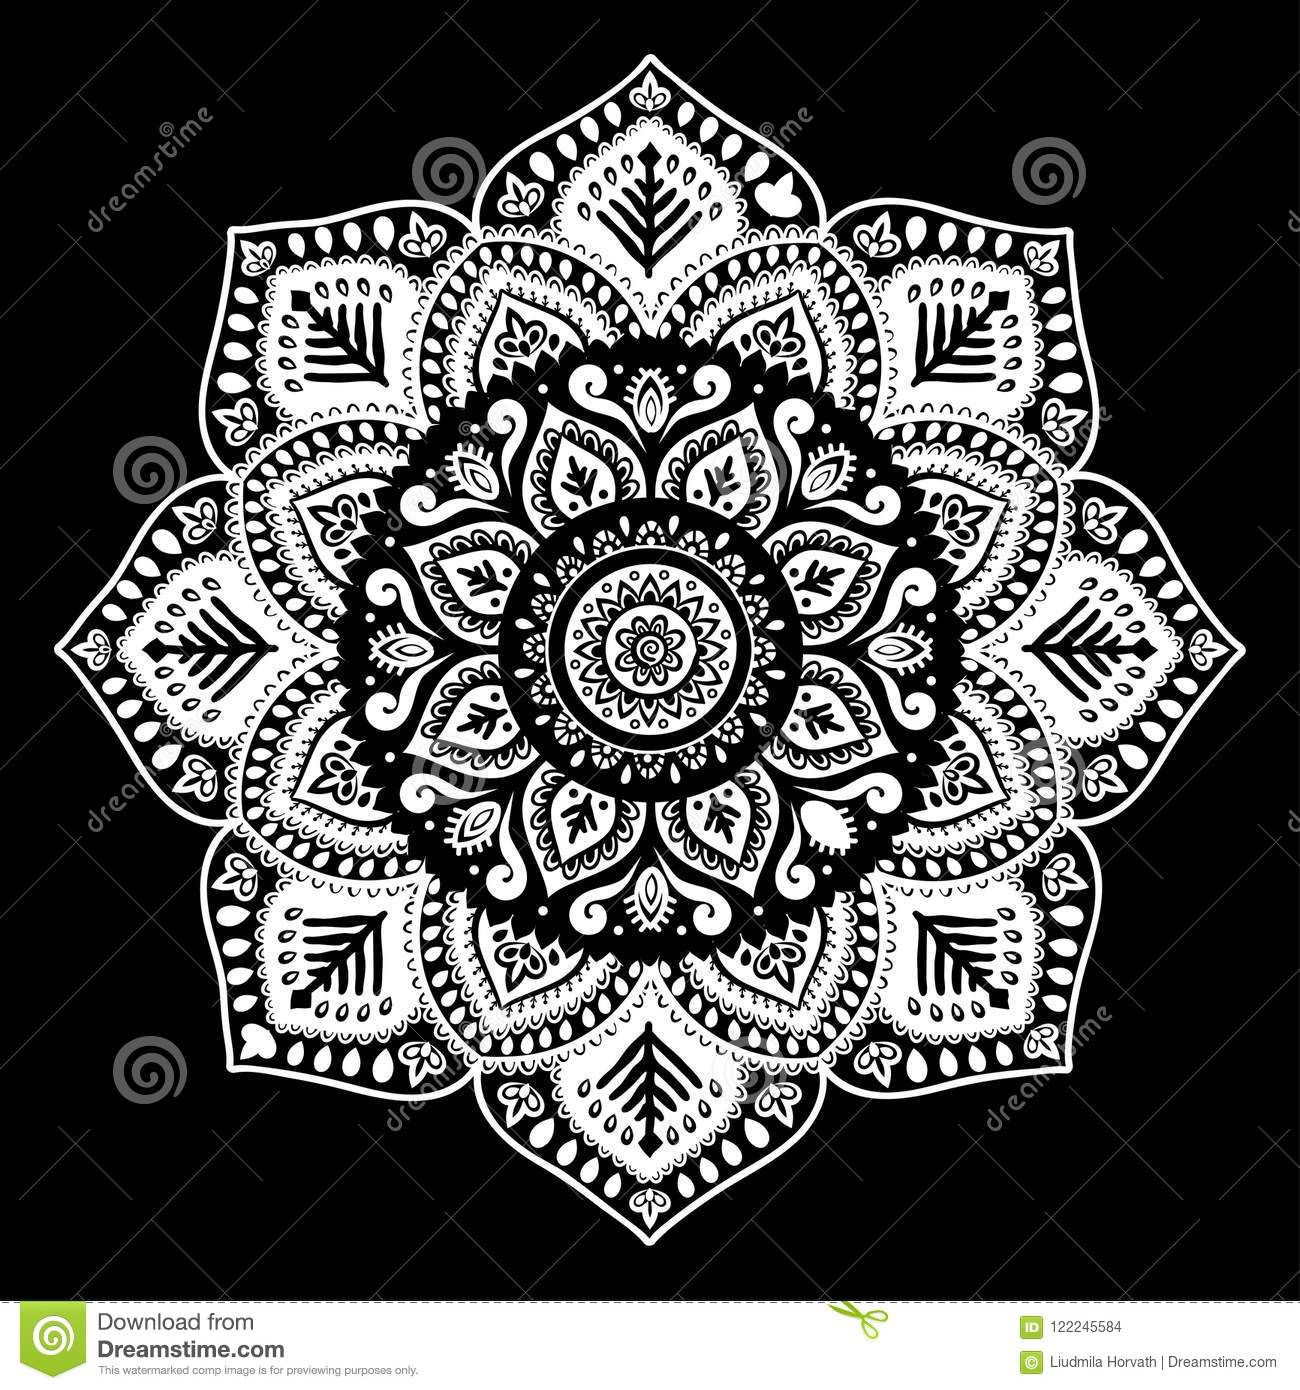 381aa3faaaaf8 Bohemian Indian Mandala towel print. Vintage Henna tattoo style Indian  medallion. Ethnic ornament could be used as shirt print, phone case print,  textile, ...